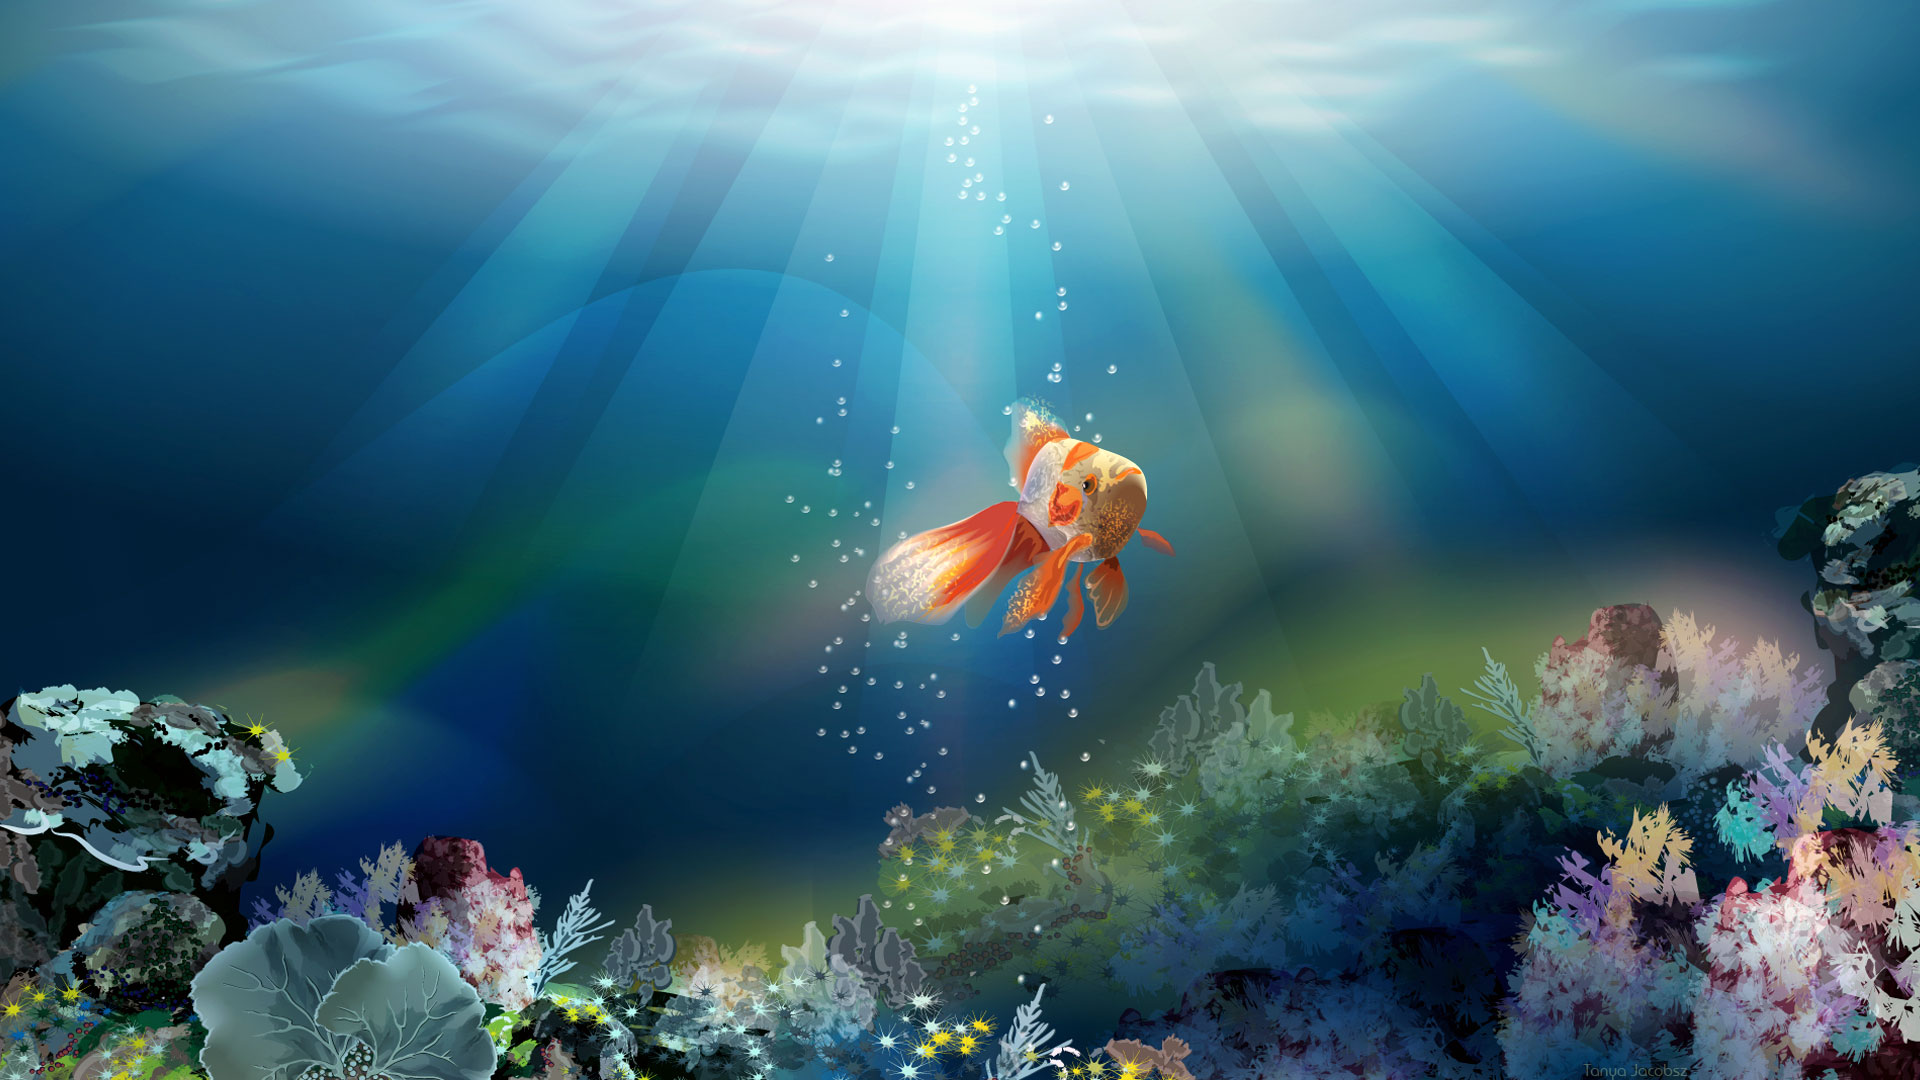 Fish wallpaper 3d desktop 10711 wallpaper walldiskpaper for 3d fish wallpaper